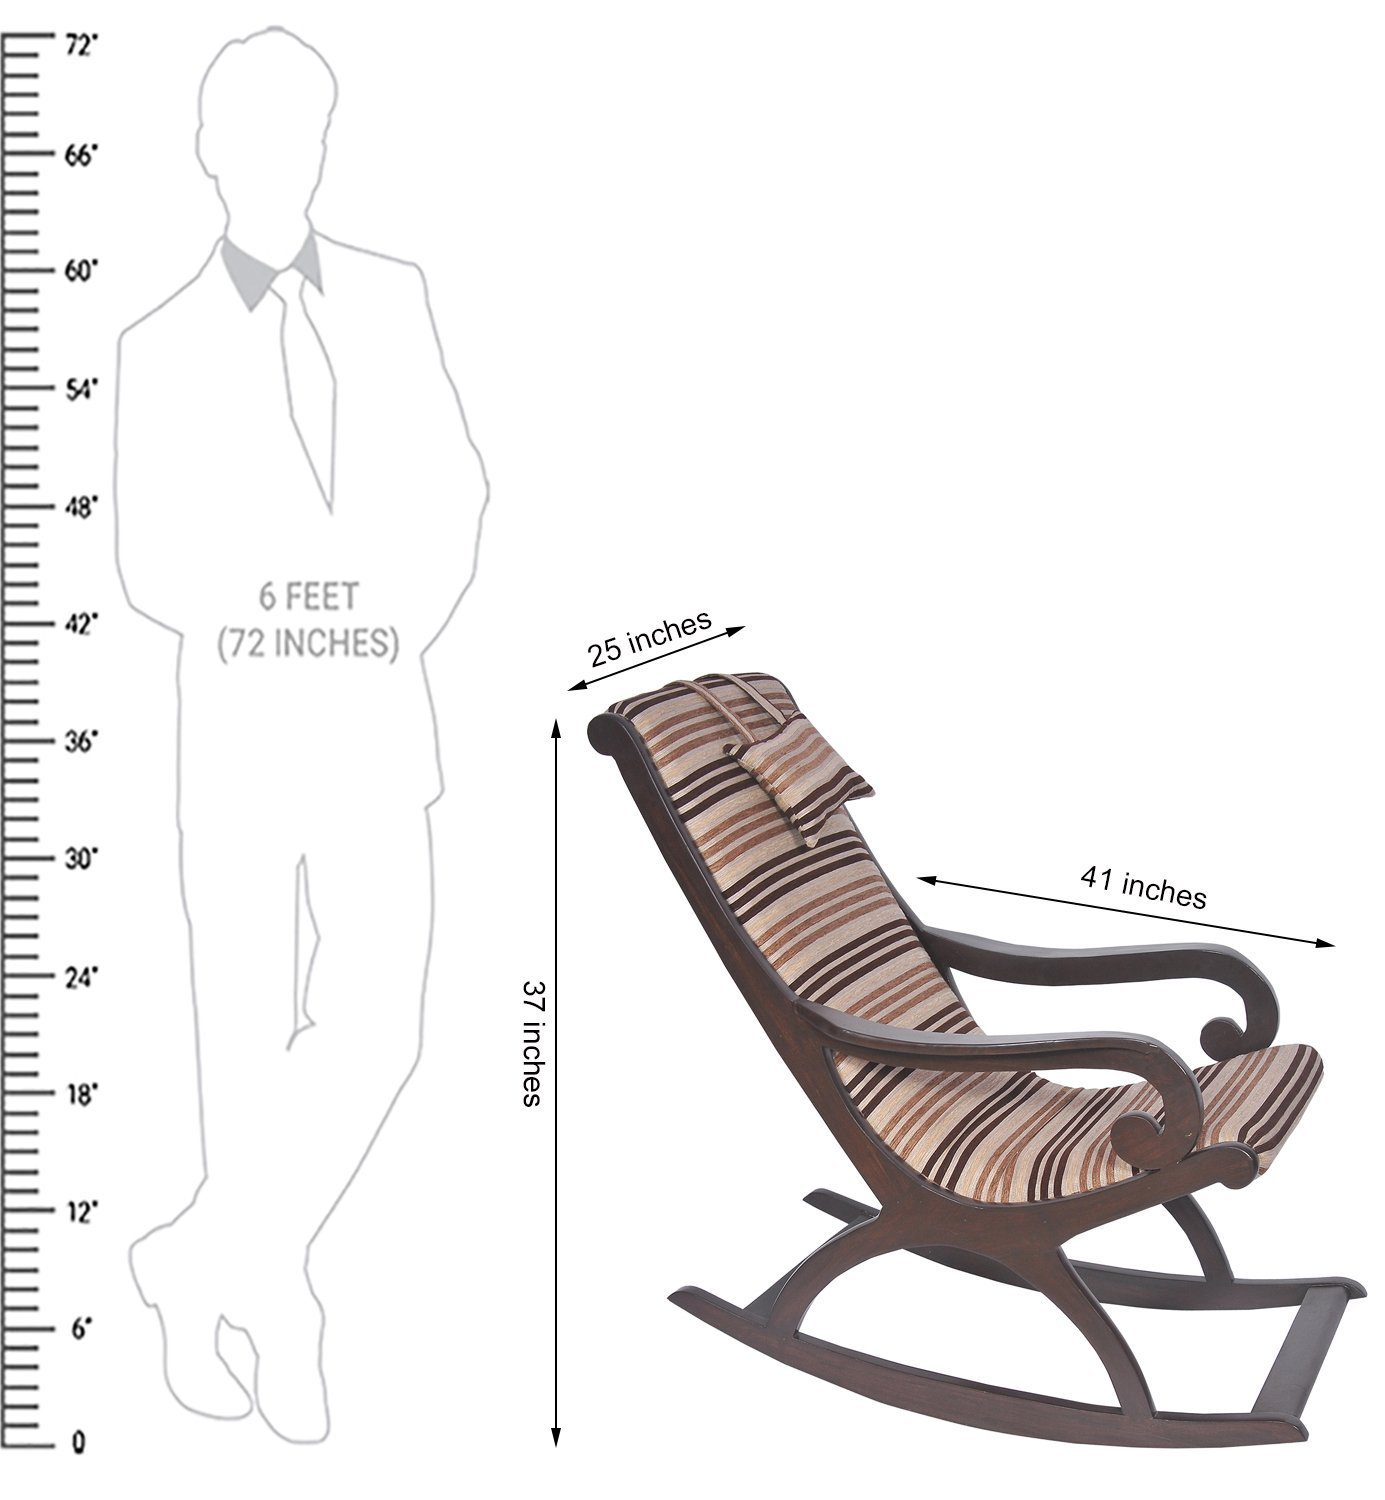 Aoskit Wooden Royal Rocking Chair Wood Rocking Chair Living Room Home Garden Lounge Size Length (41 inches), Width (25 inches), Height (37 inches)